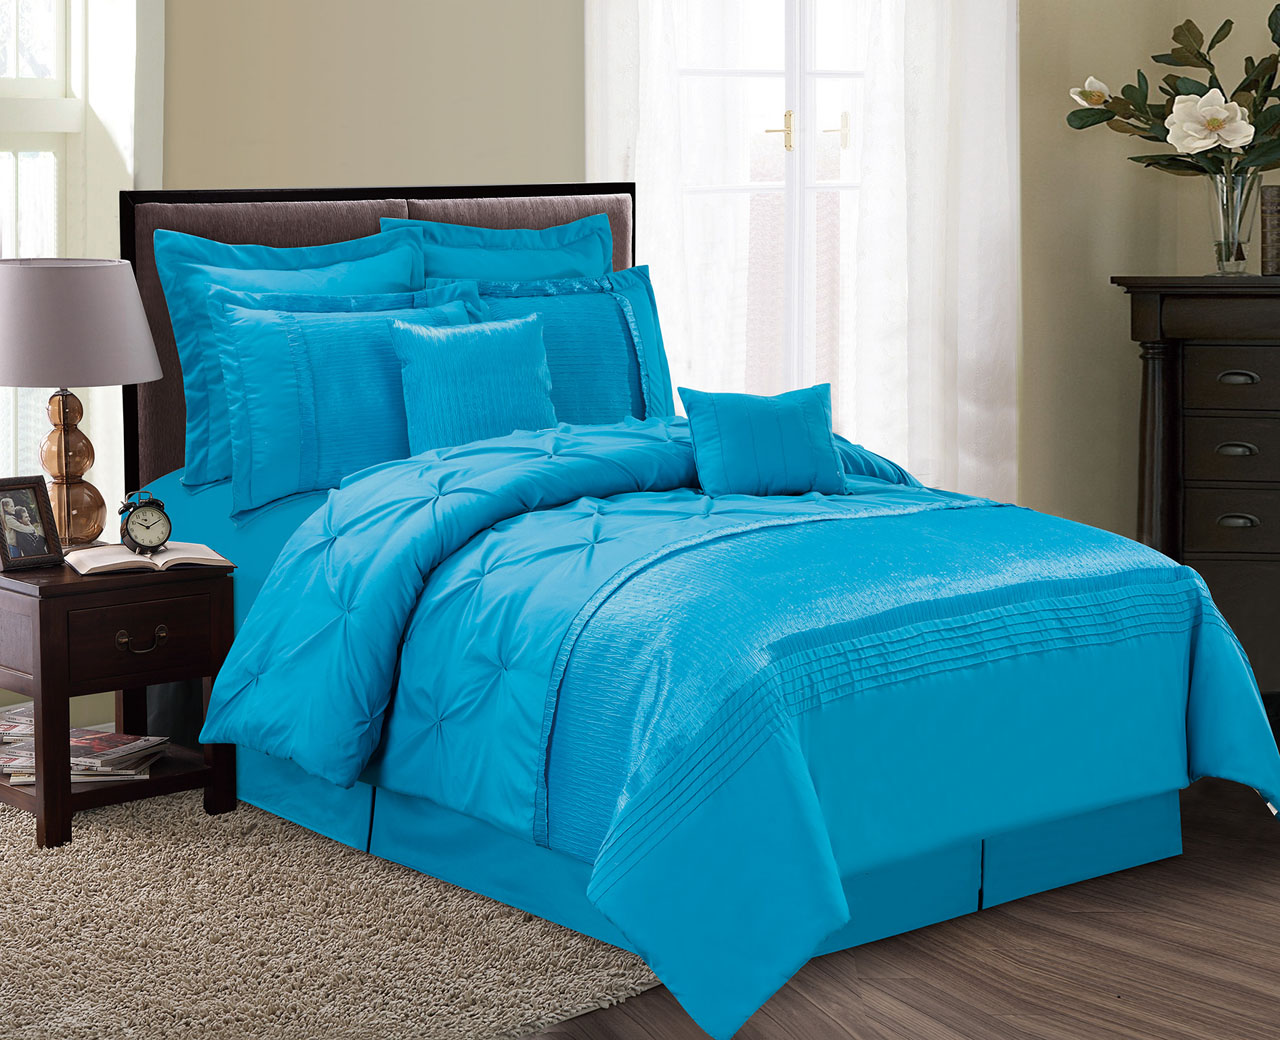 8 Piece Aubree Pinched Pleat Ocean Blue Comforter Set